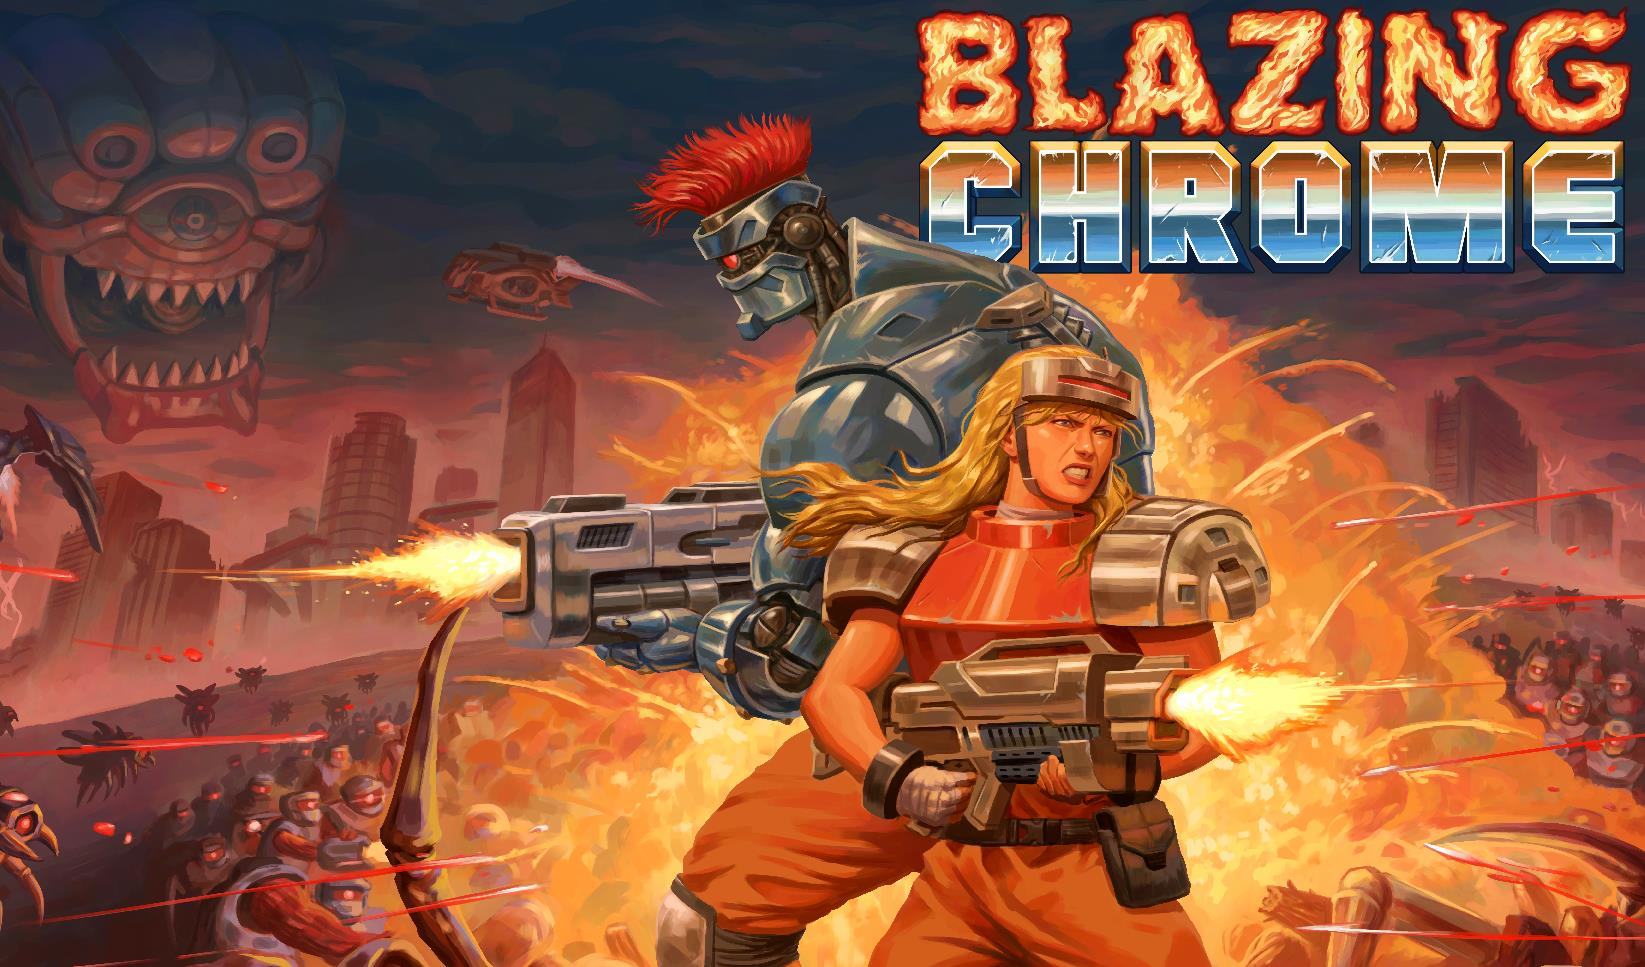 If you're not into the new Contra, why not have some of that Blazing Chrome? - VG247